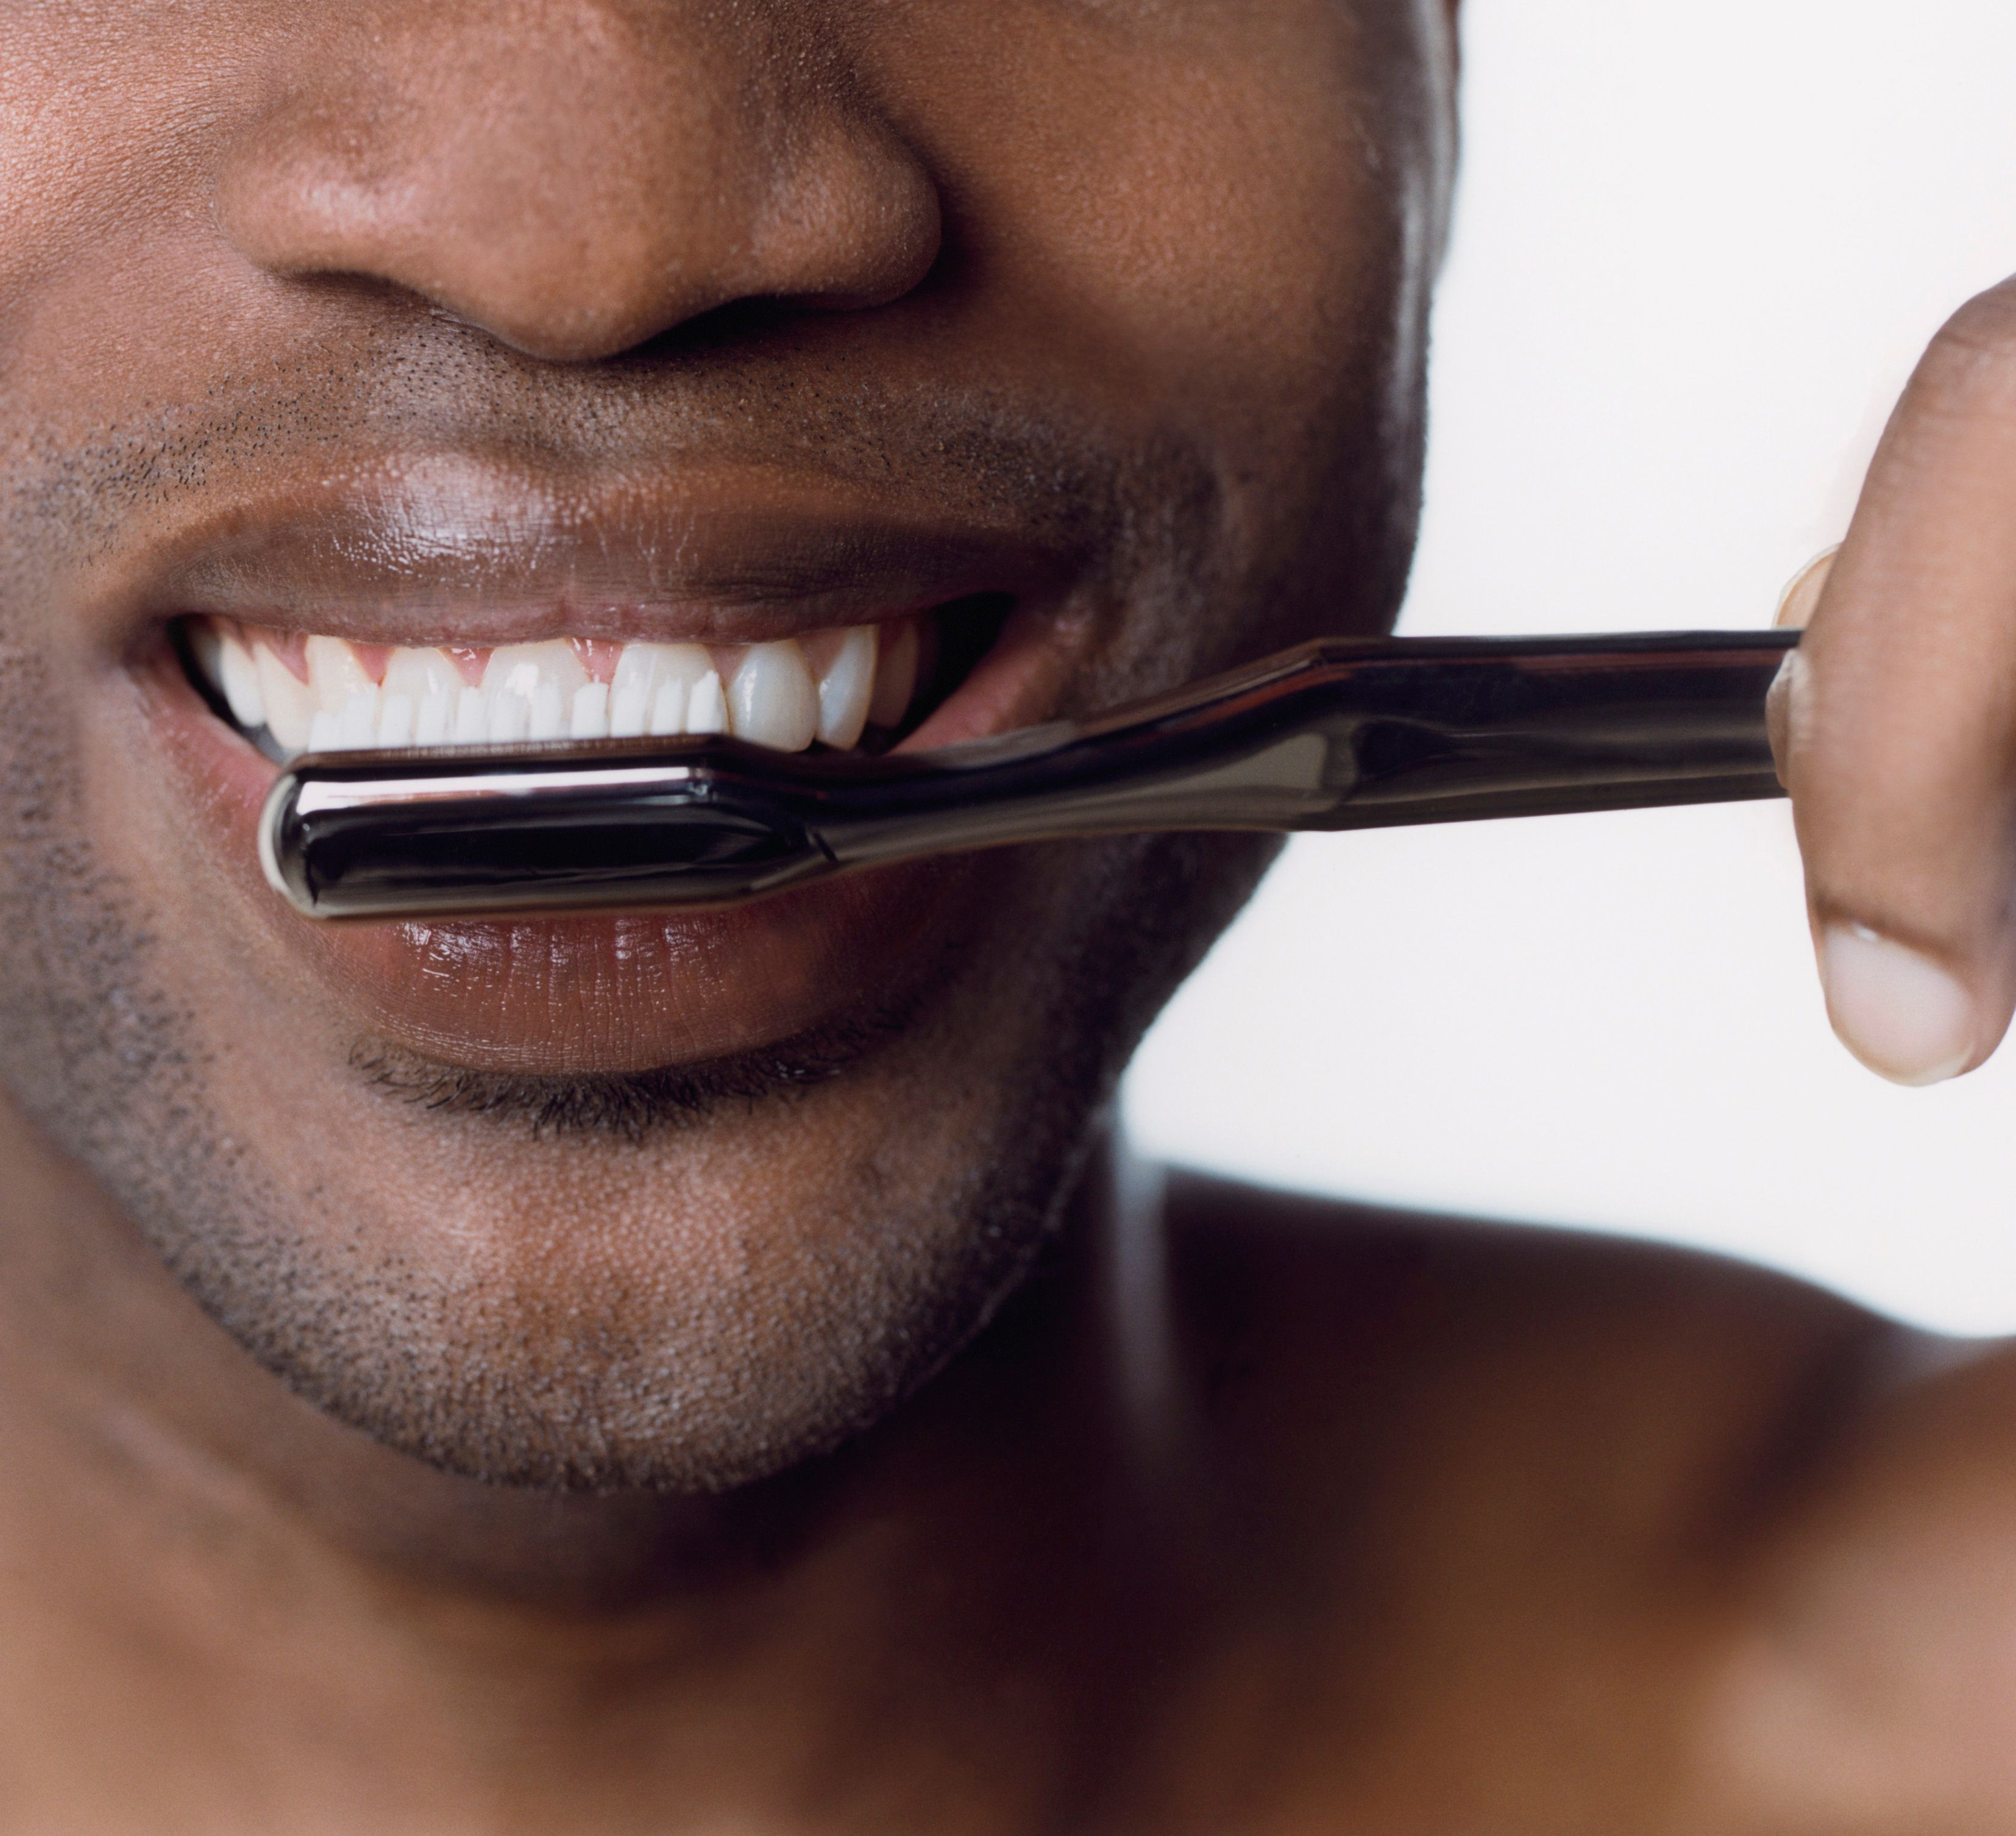 Believe it or not, there is a right way to clean your teeth.